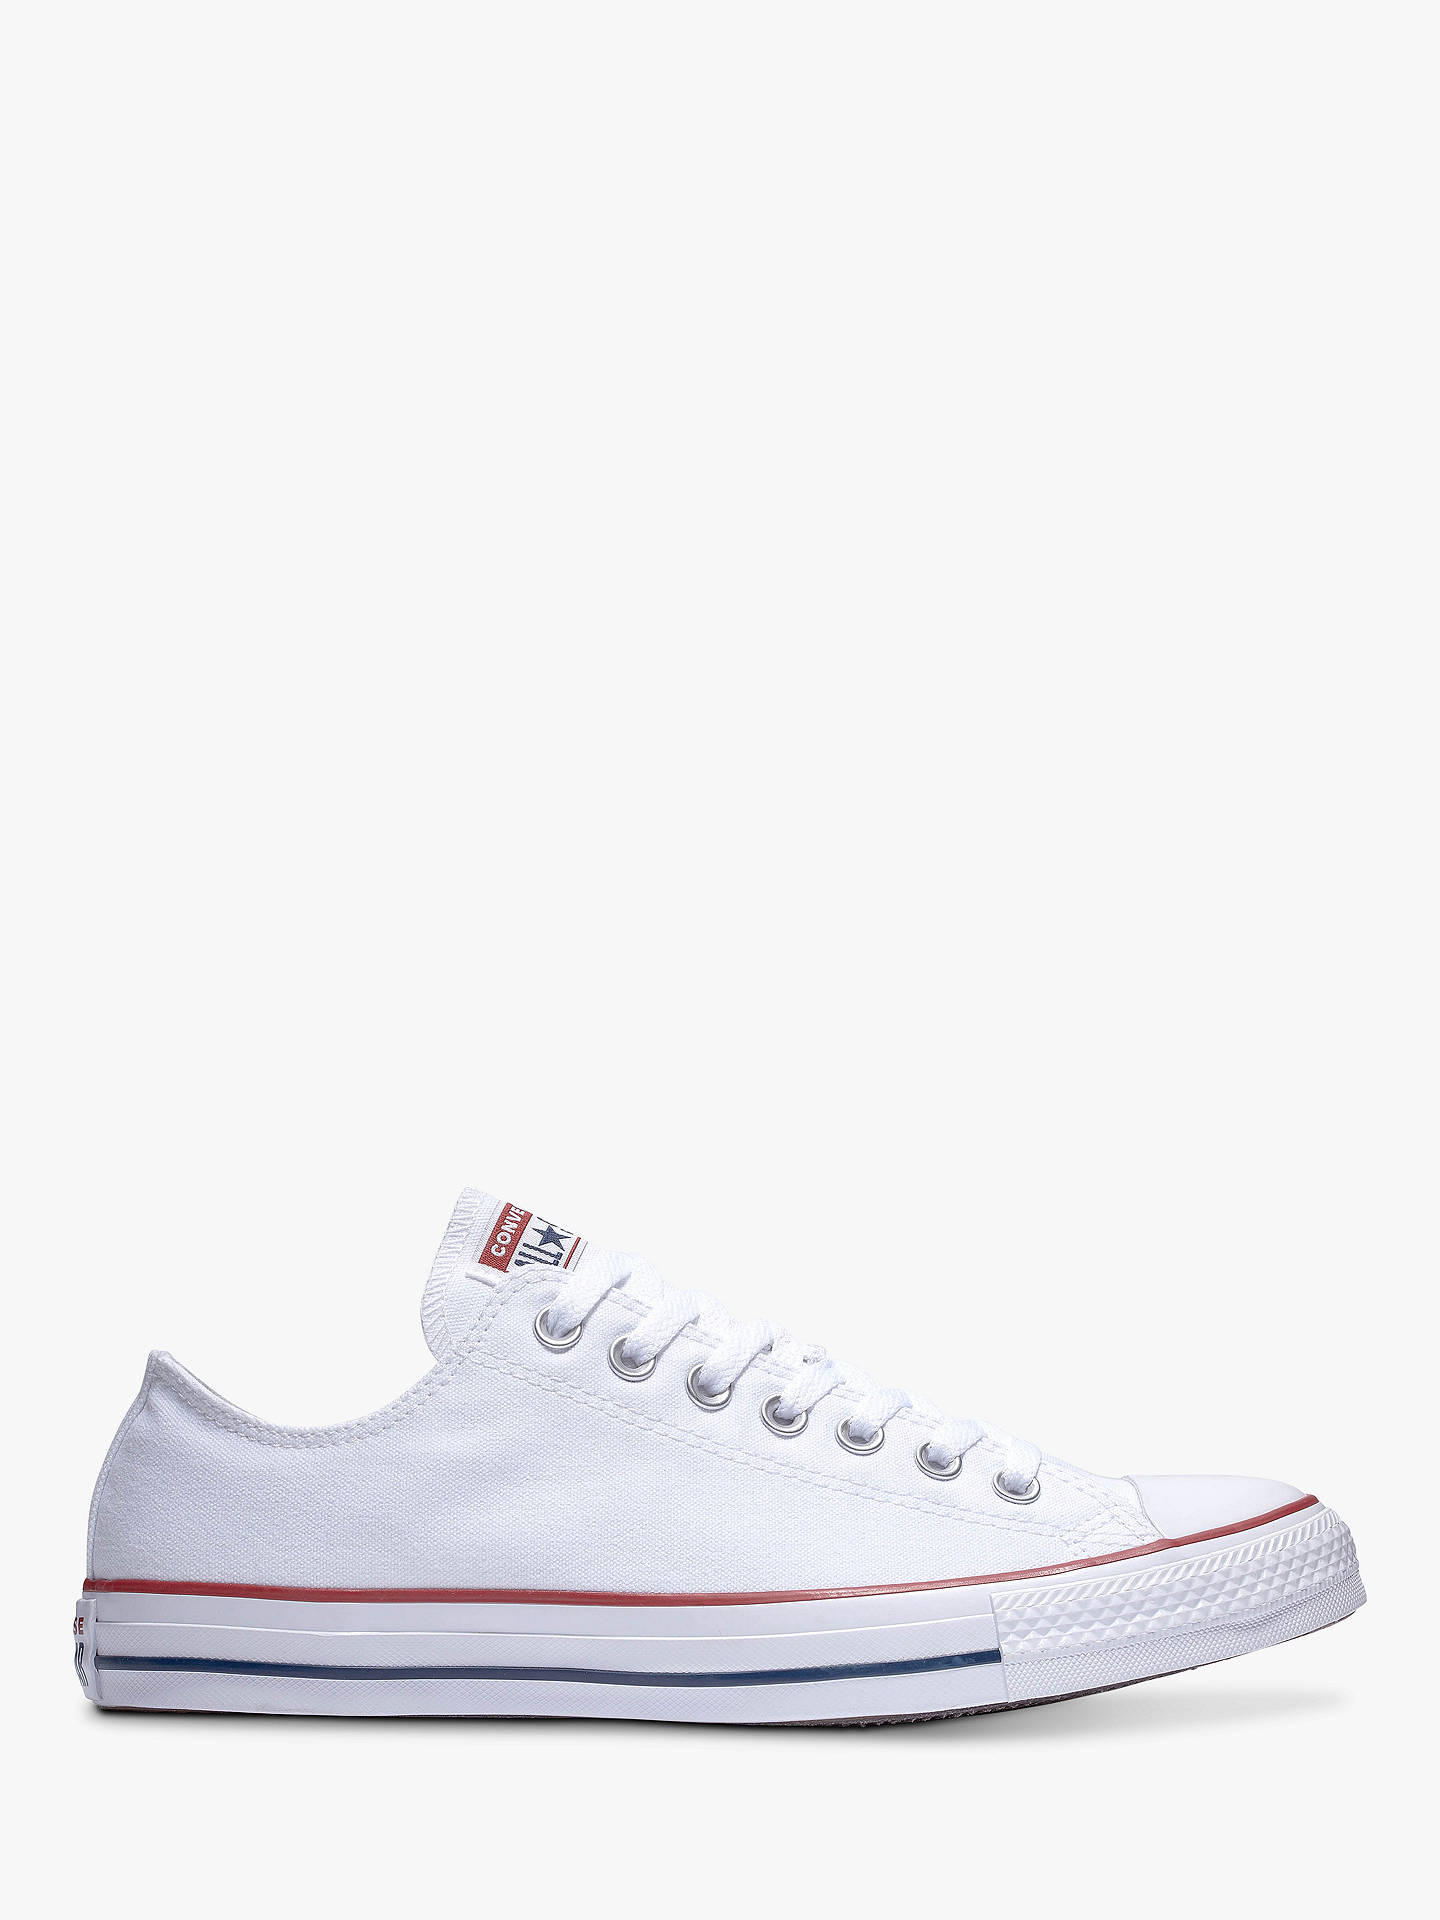 78d4edbcd5712e Converse Chuck Taylor All Star Canvas Ox Low-Top Trainers at John ...